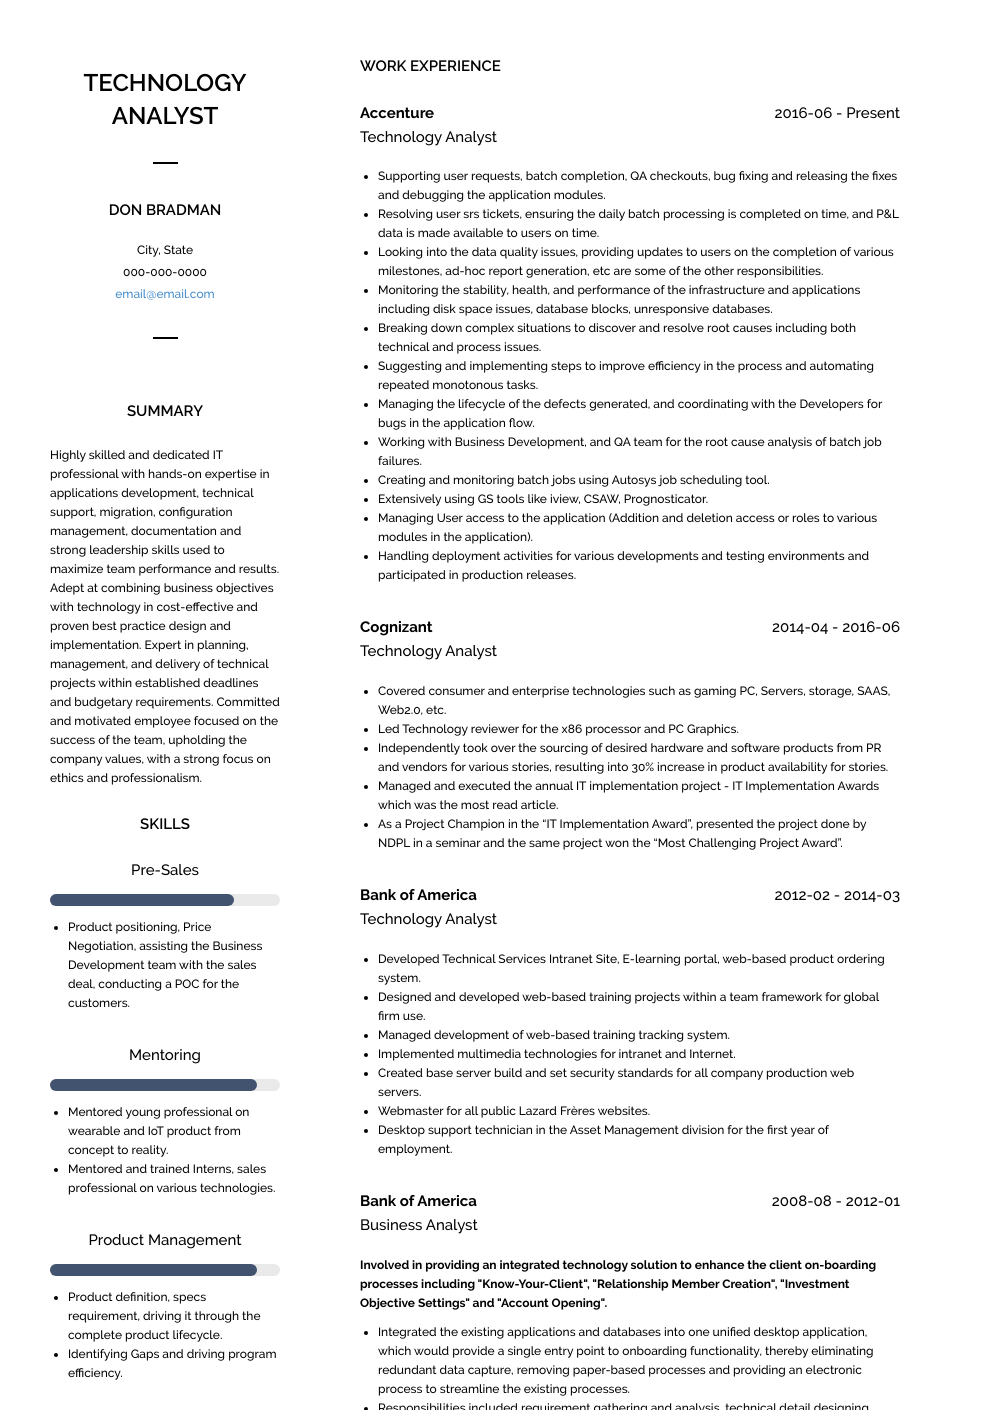 Technology Analyst  Resume Samples